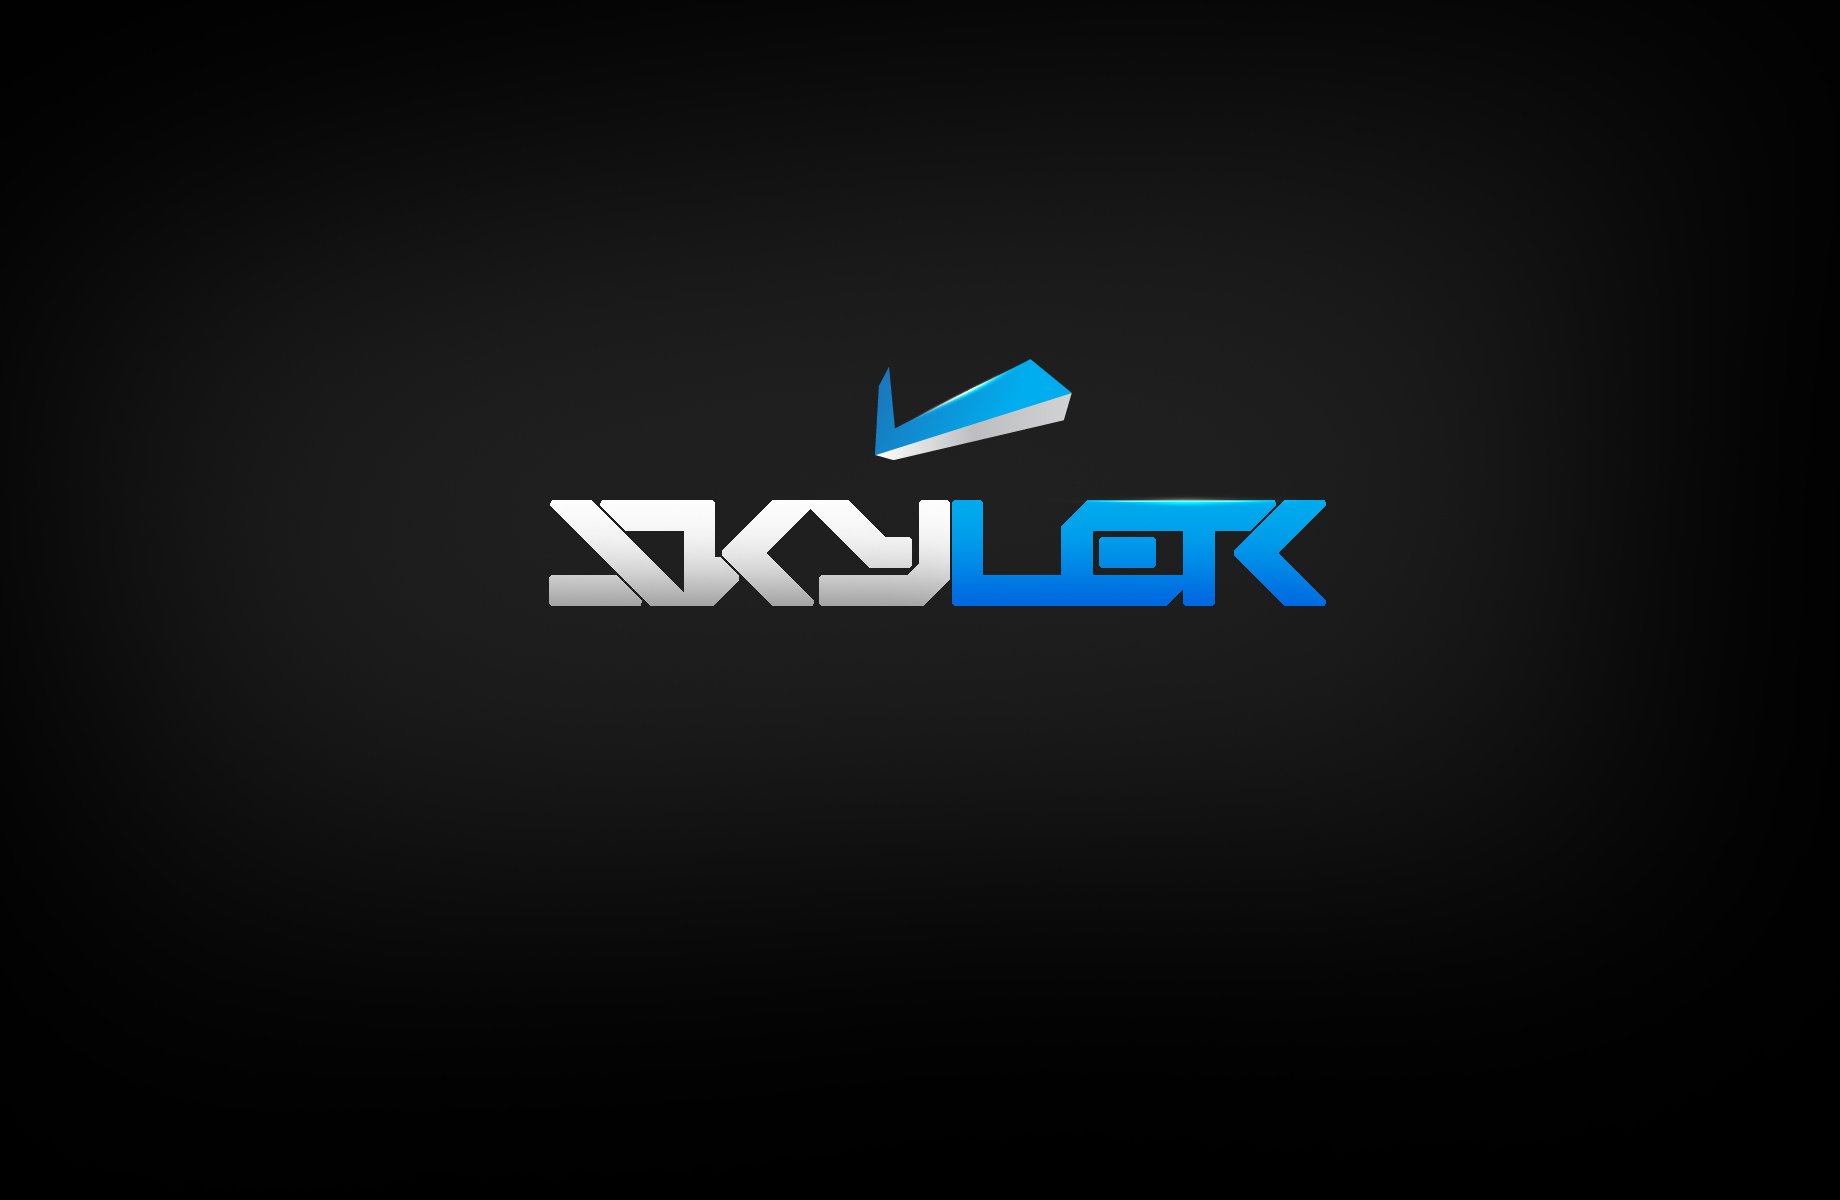 Logo Design by Jan Chua - Entry No. 204 in the Logo Design Contest Artistic Logo Design for Skyler.Asia.